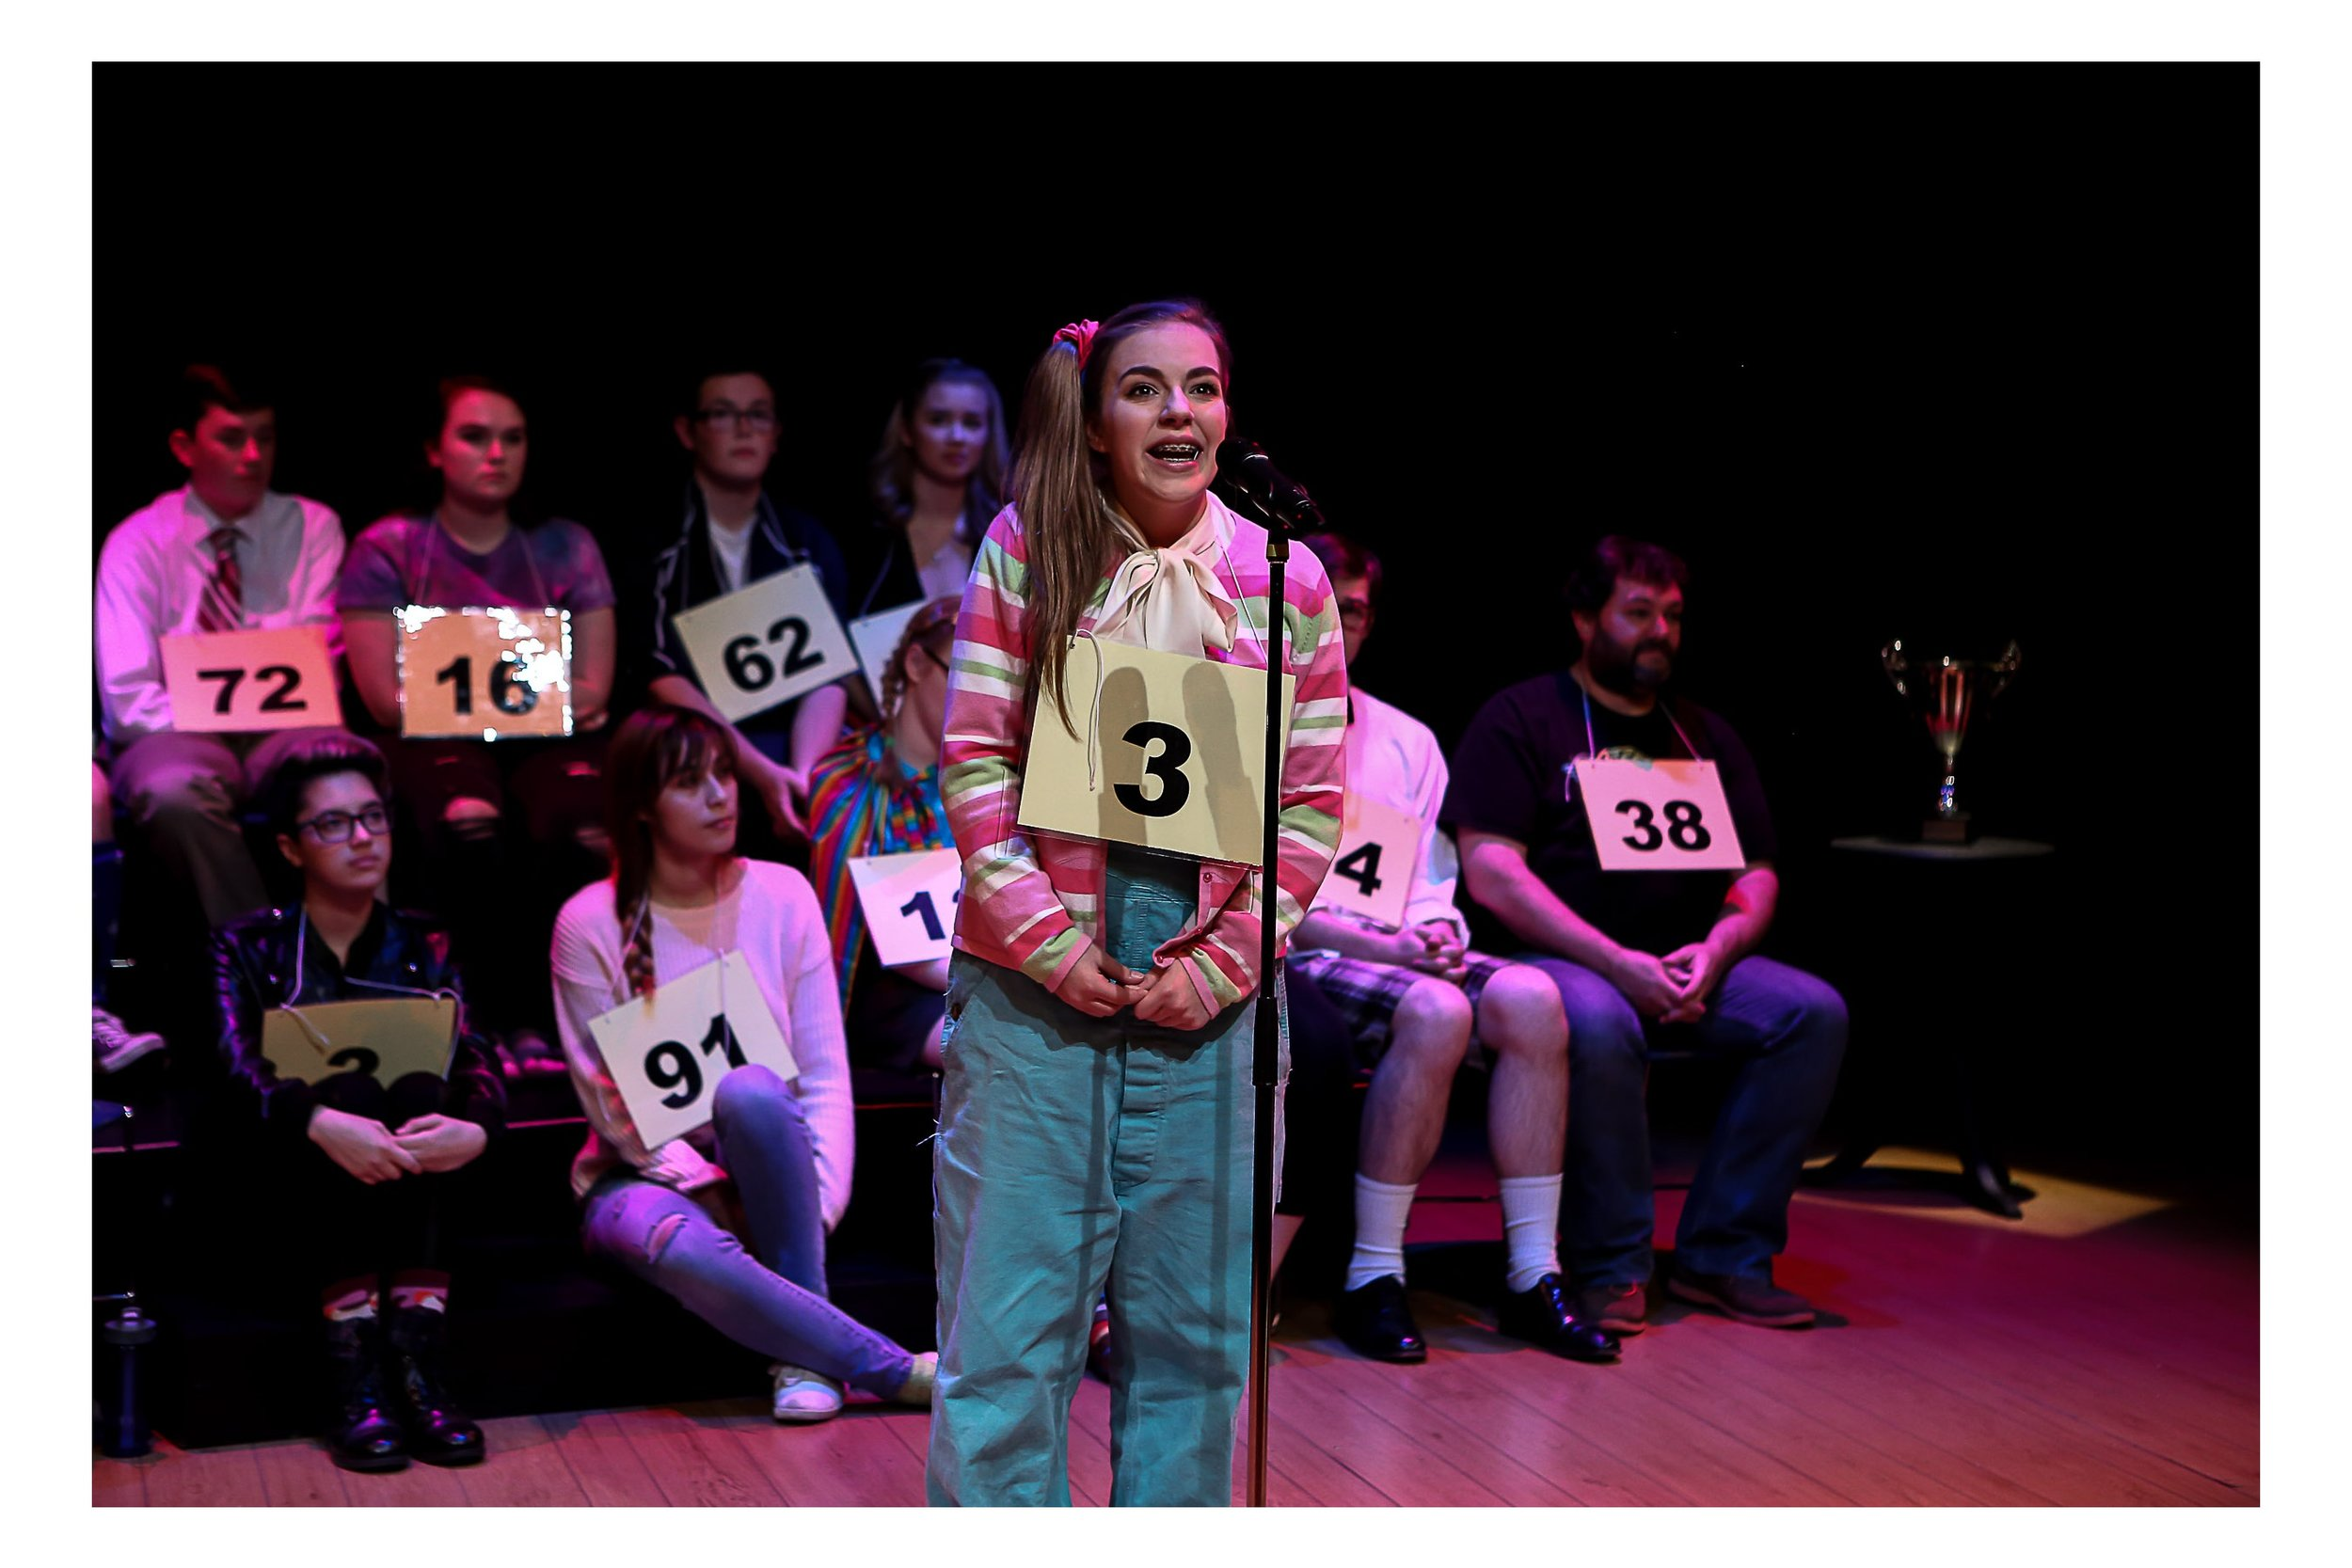 Everett High School - Putnam County Spelling Bee, 2015